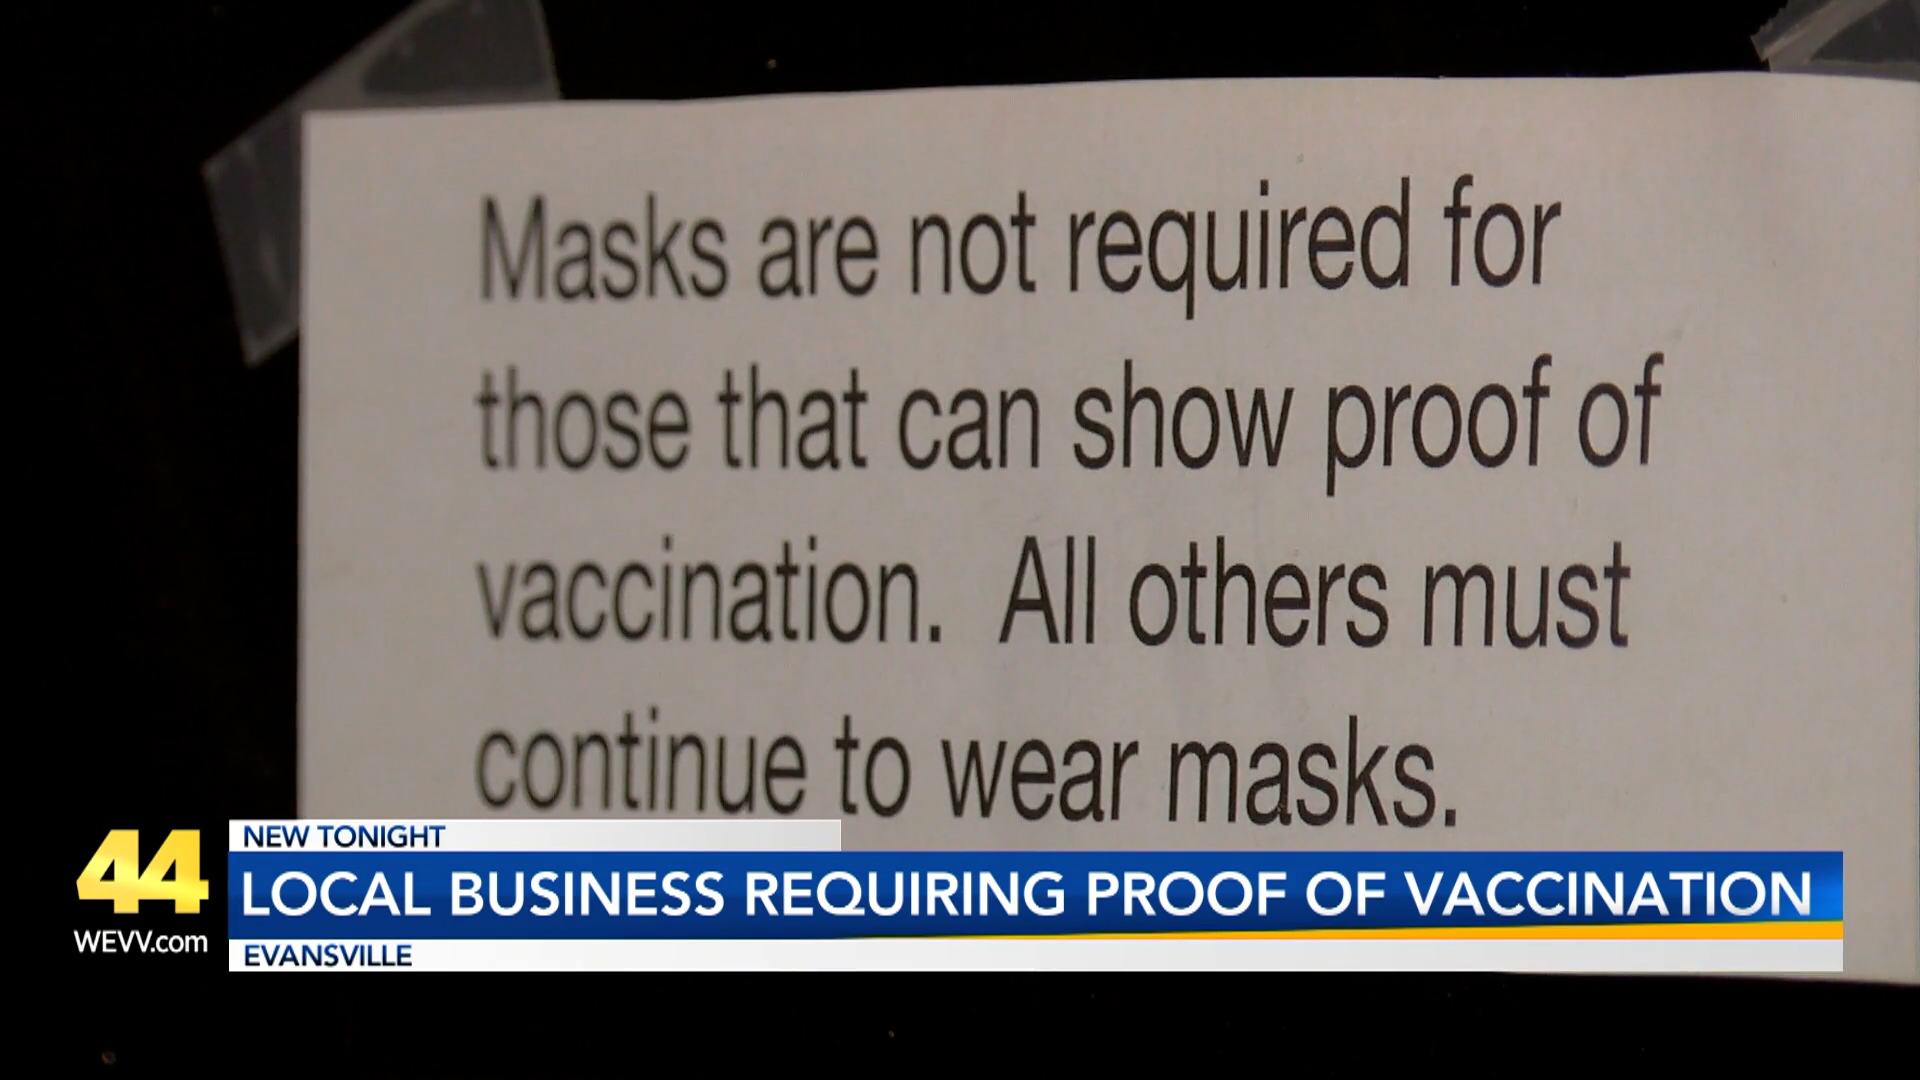 Image for Local Business Requiring Proof of Vaccination